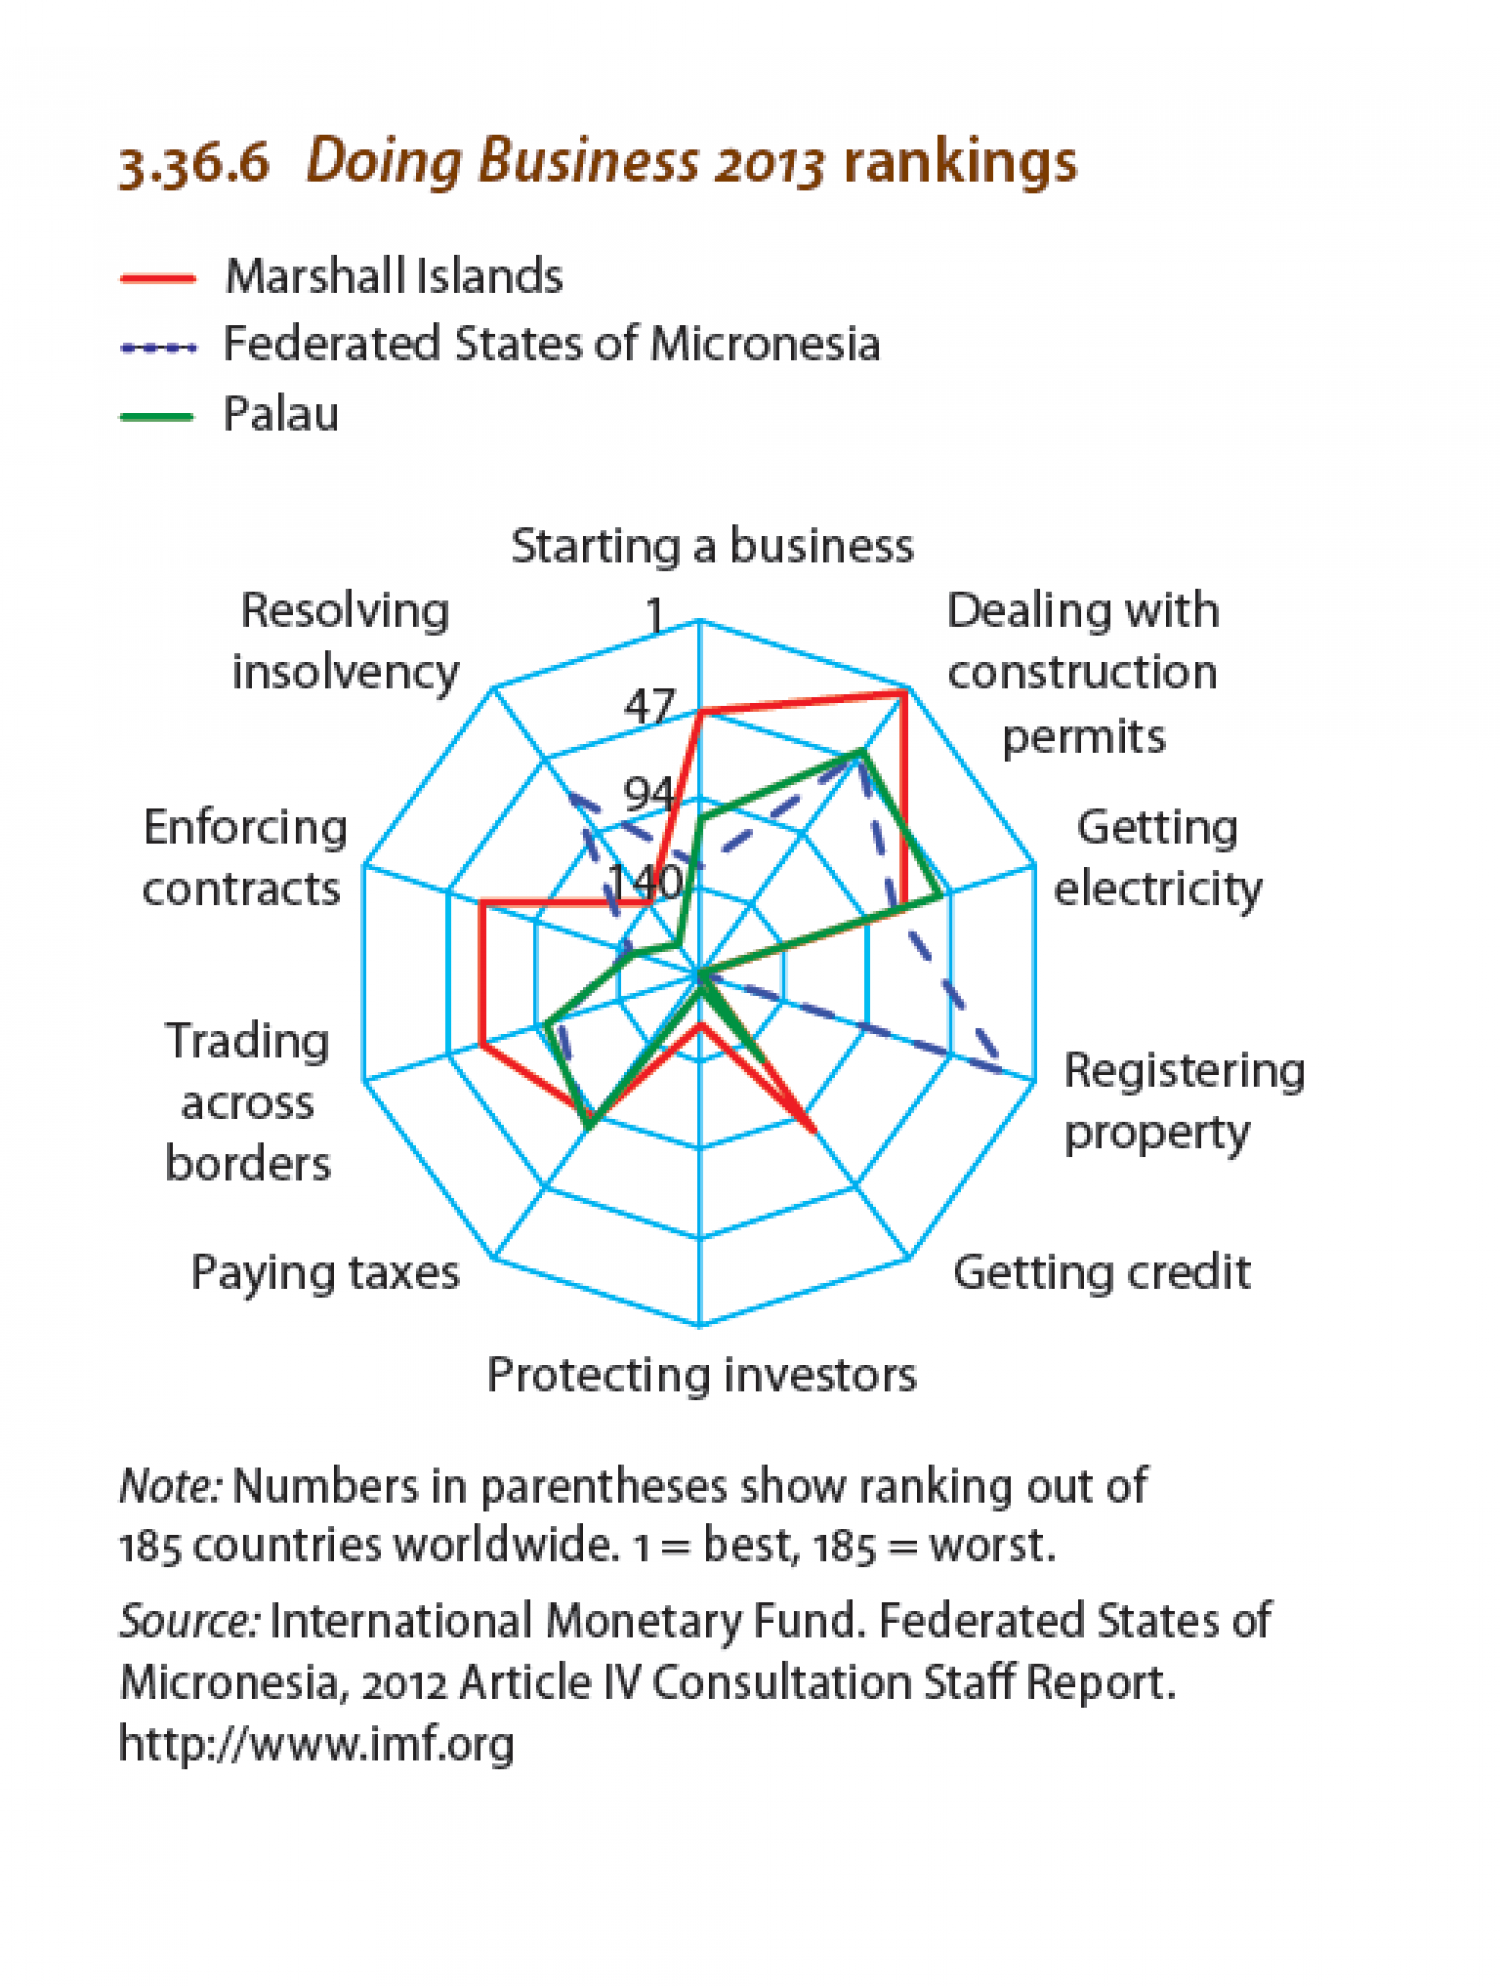 North Pacific economies :  Doing Business 2013 rankings Infographic